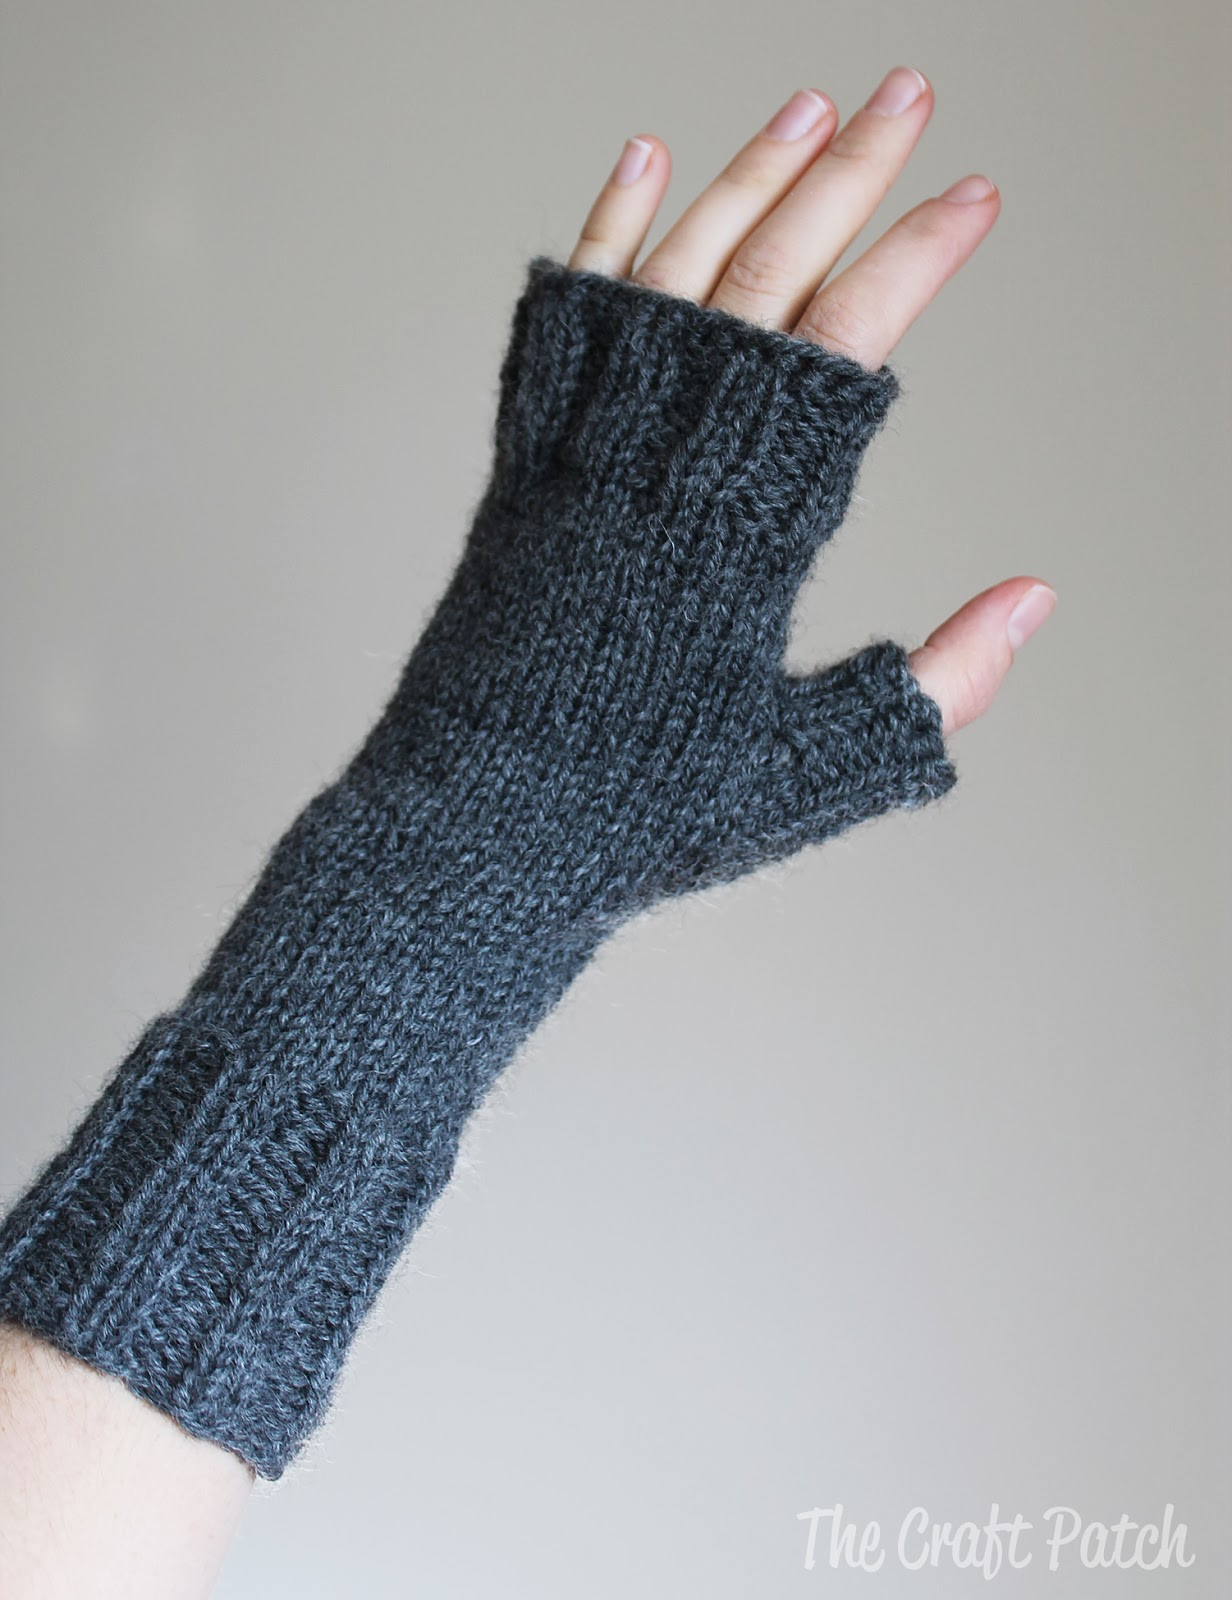 Lovely Knitted Fingerless Gloves thecraftpatchblog Knitted Fingerless Mittens Of Luxury 48 Images Knitted Fingerless Mittens